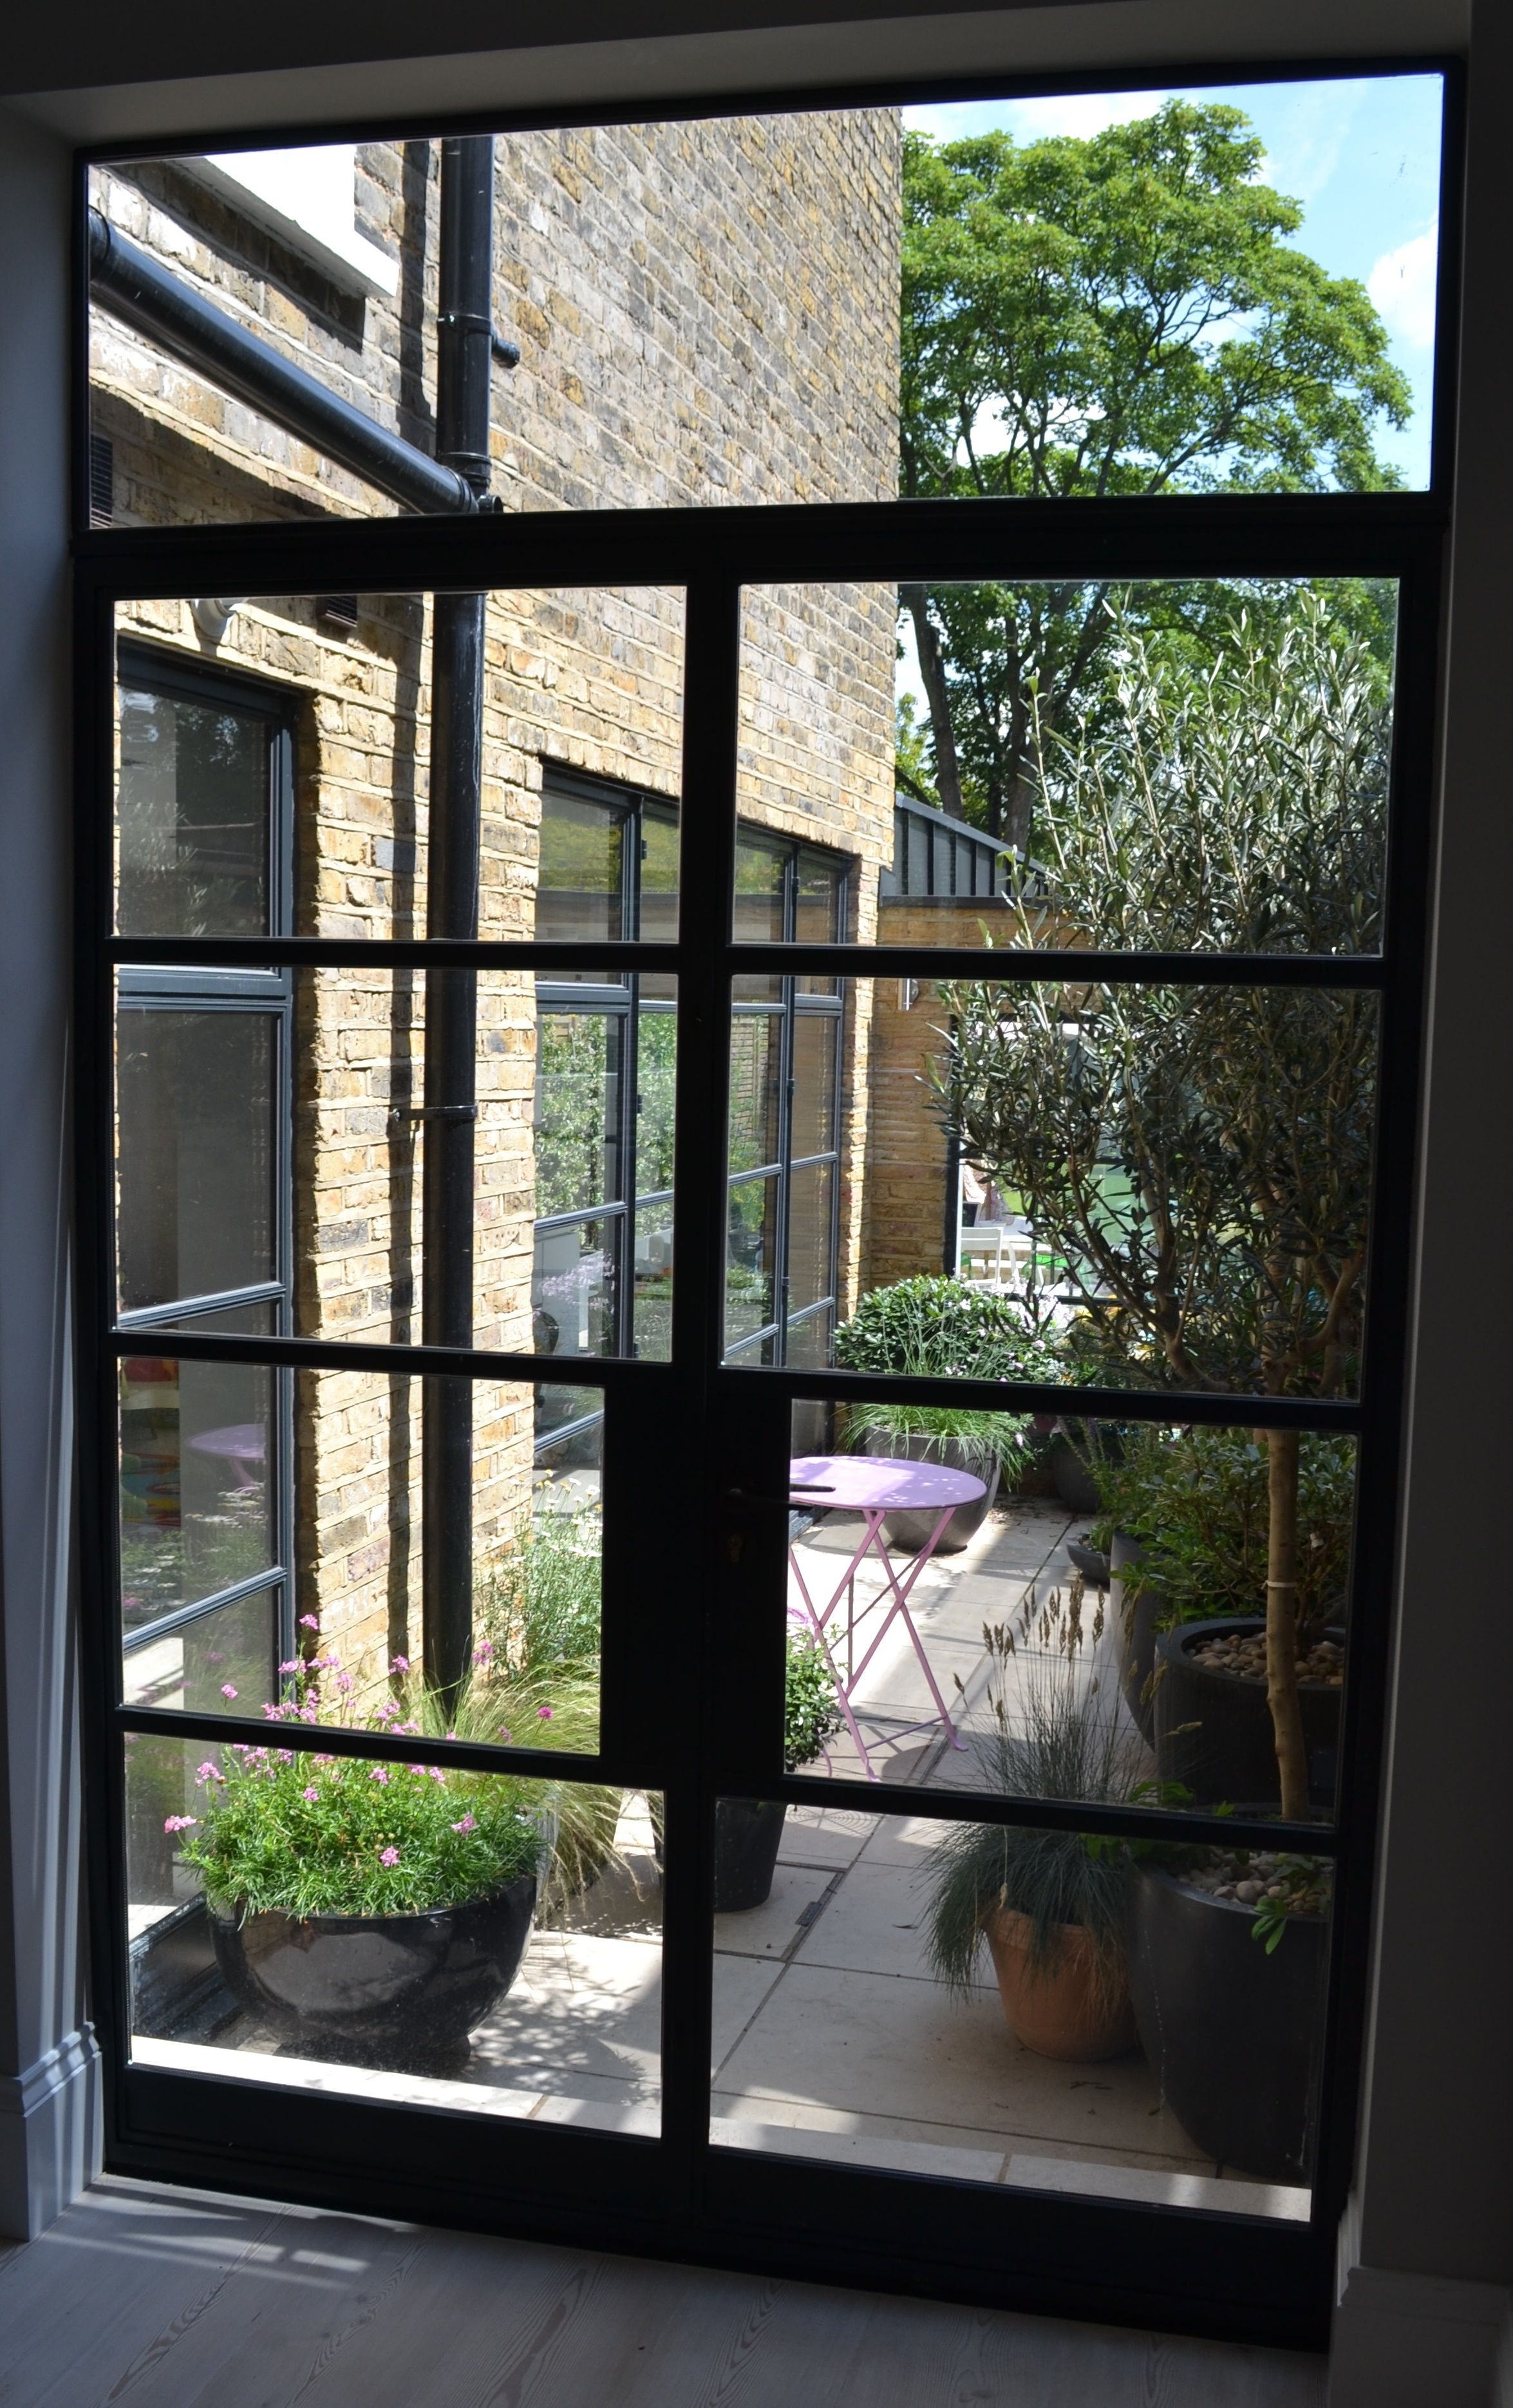 Crittall Steel Doors With A View To Courtyard And Additional Crittall Steel Door Screens And Windows By Li Porta Alla Francese Casa Edoardiana Porte In Acciaio